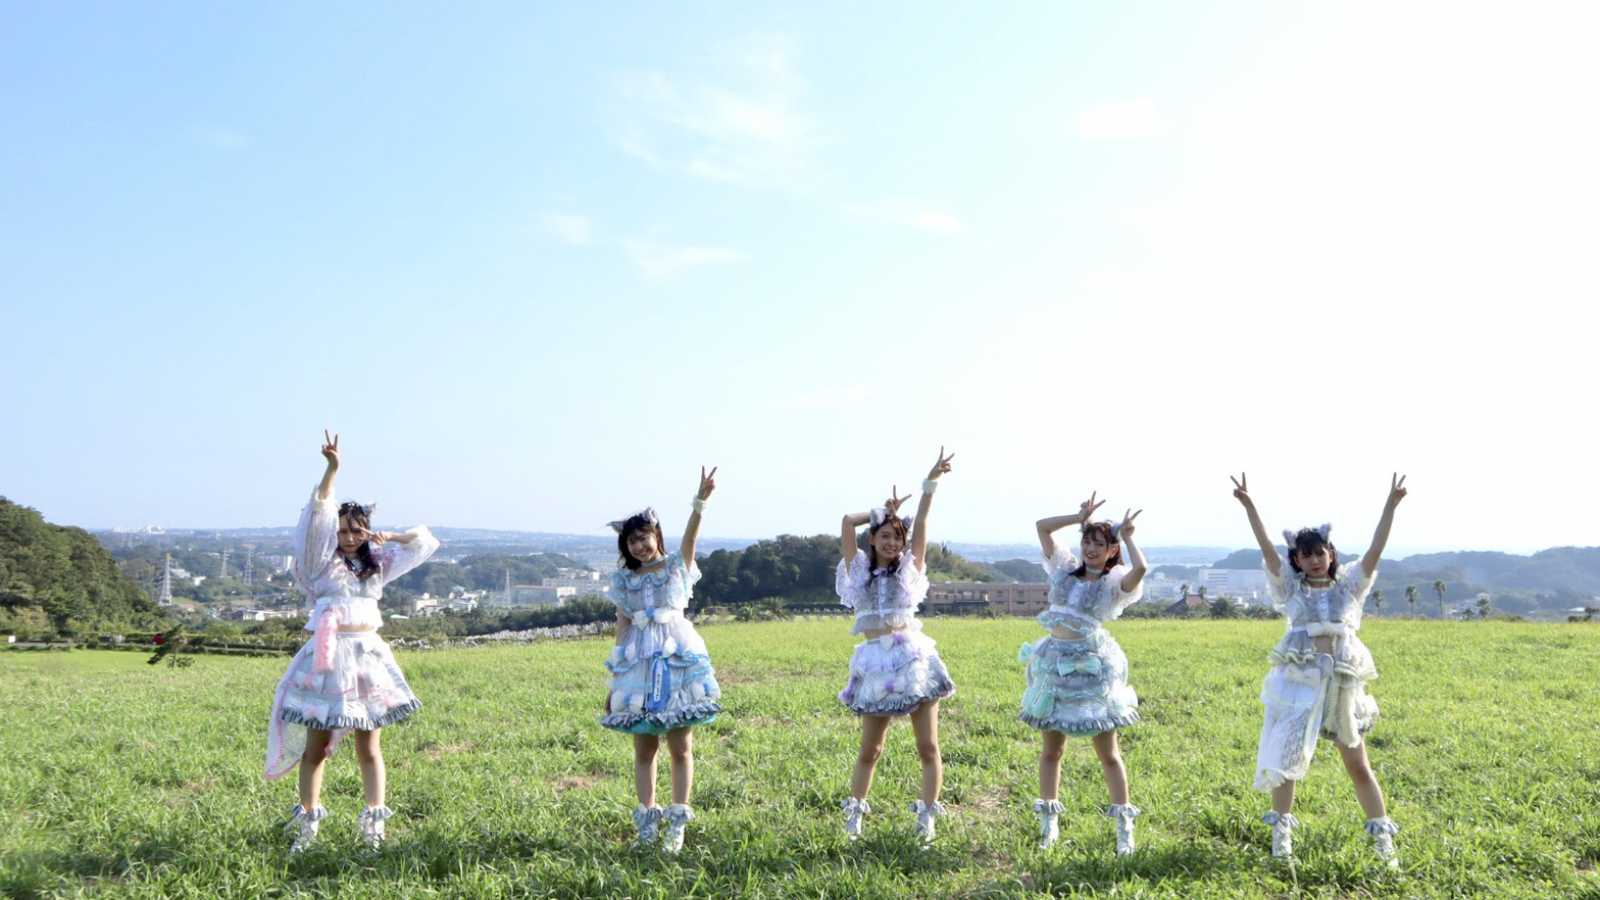 Wasuta Launch Official YouTube Channel and Announce New Single © Wasuta. All rights reserved.